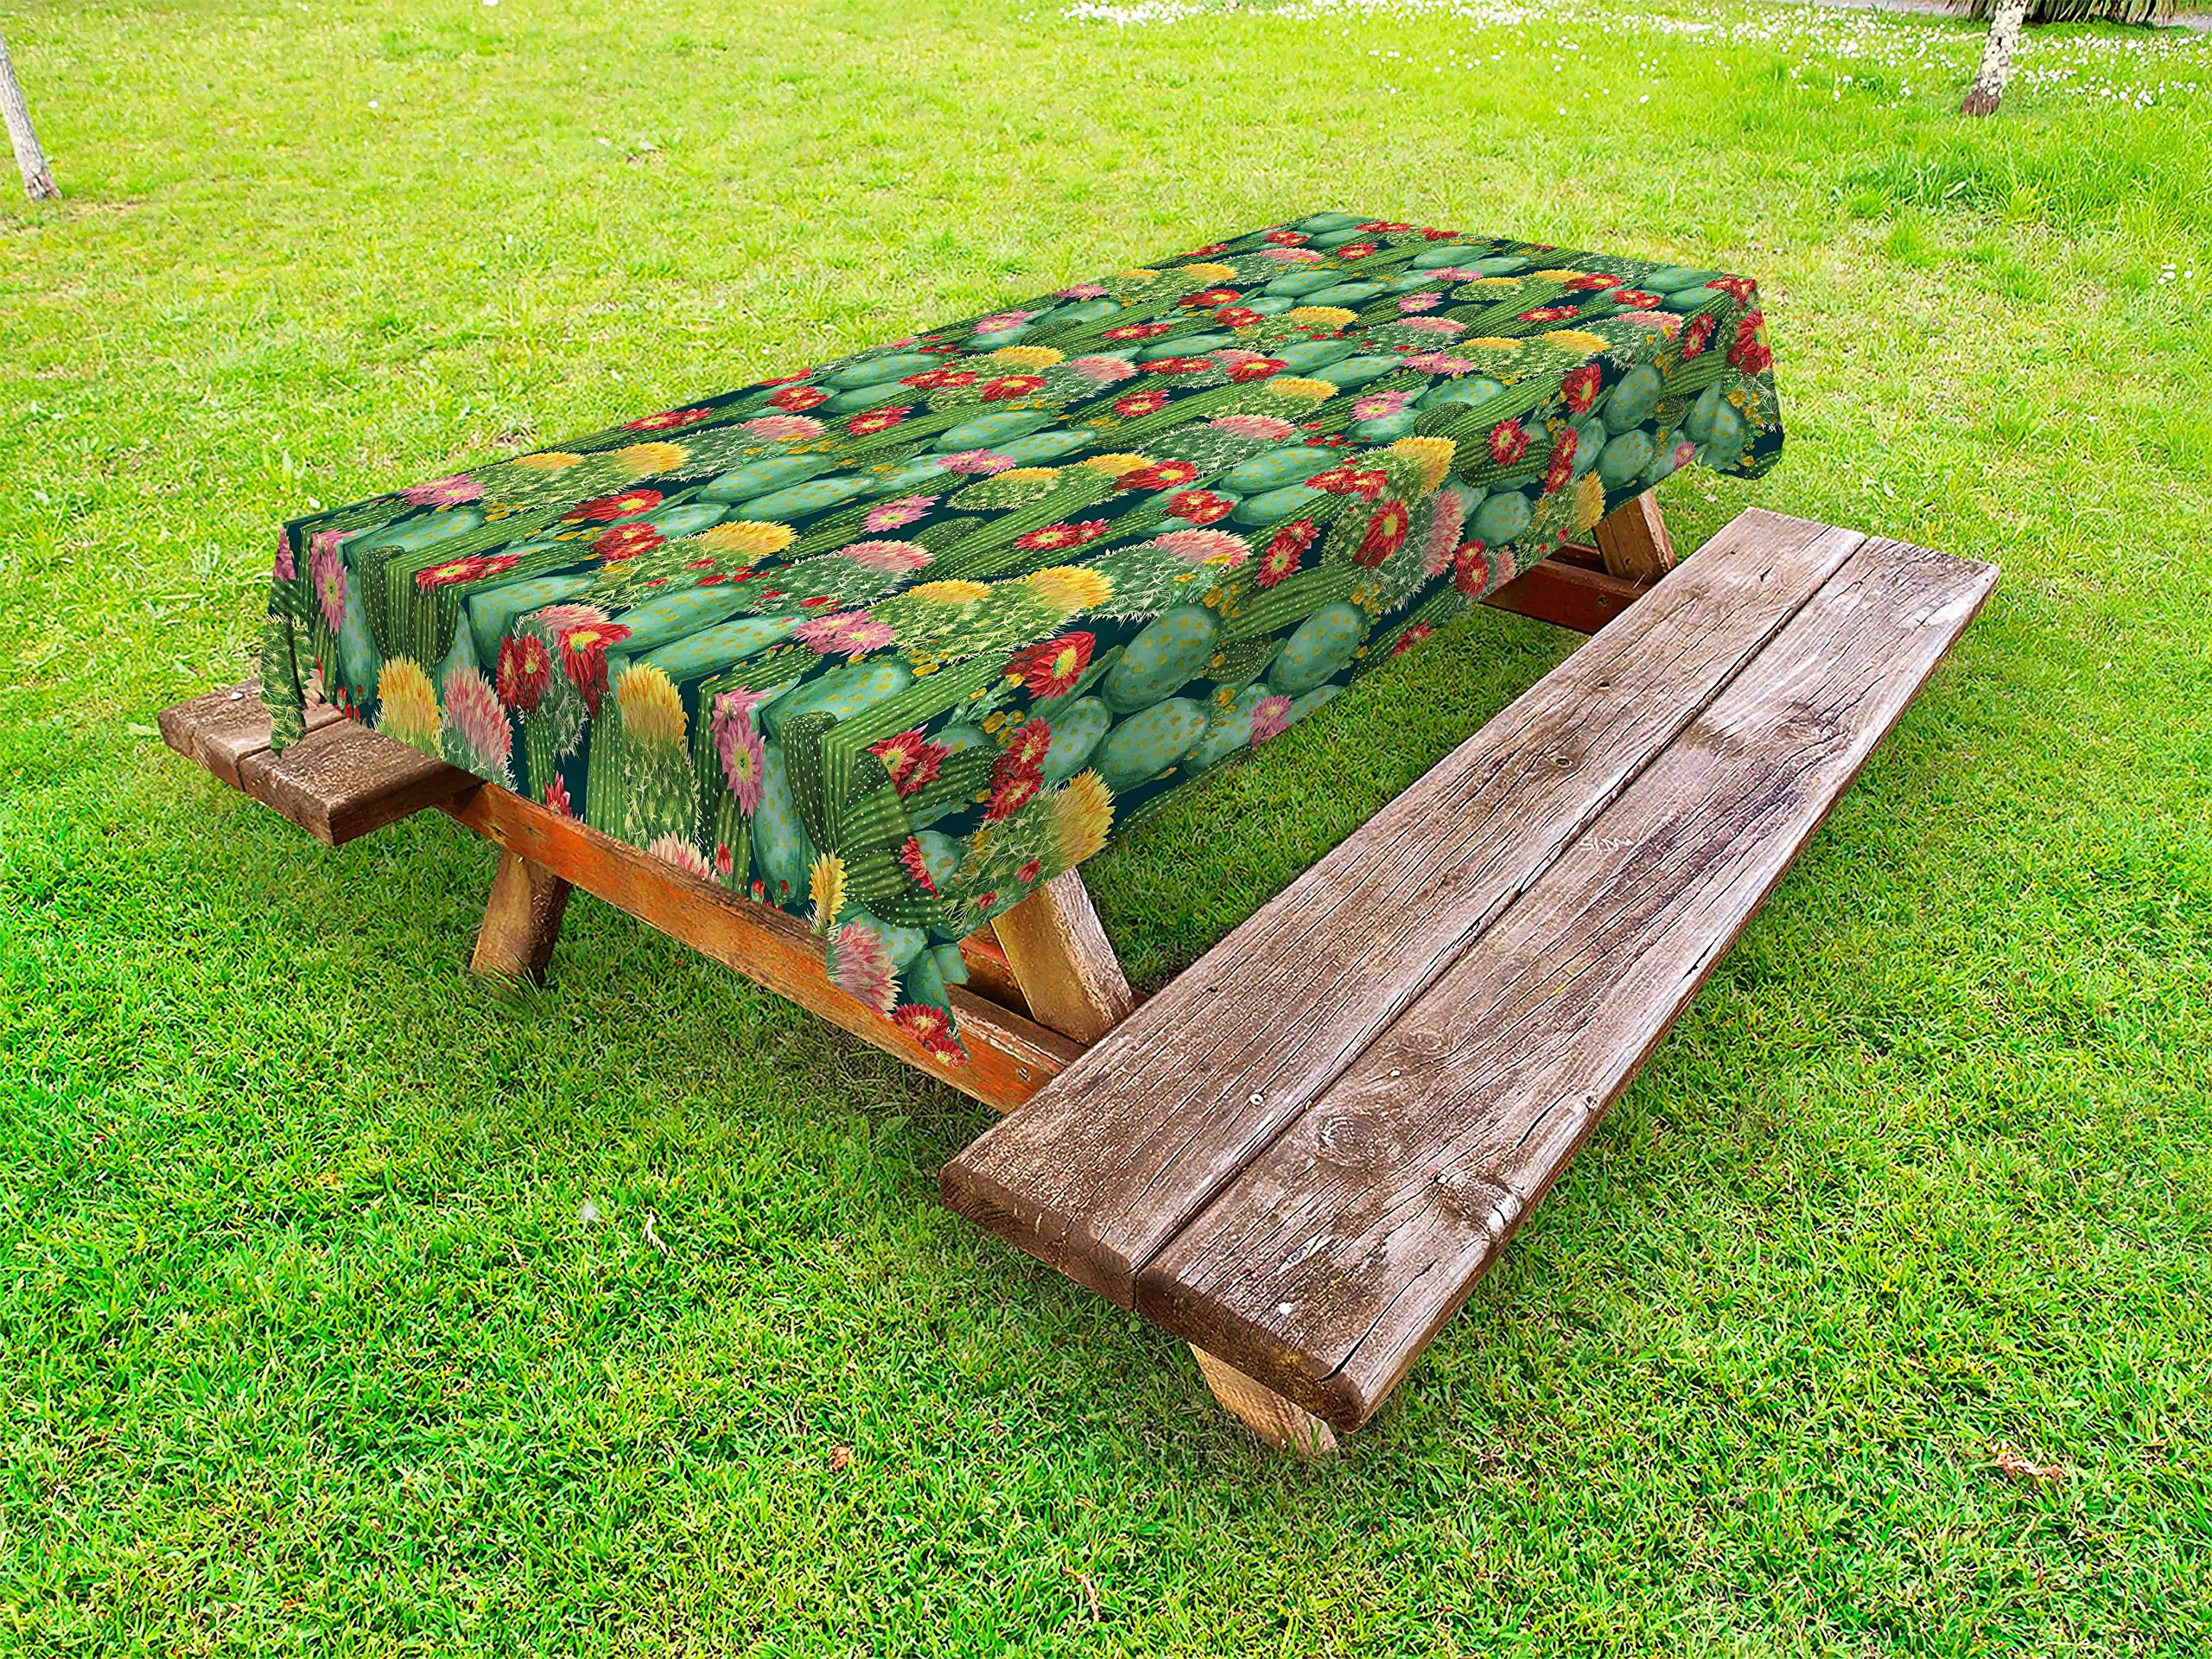 Ambesonne Nature Outdoor Tablecloth, Garden Flowers Cactus Texas Desert Botanical Various Plants with Spikes Pattern, Decorative Washable Picnic Table Cloth, 58 X 84 inches, Multicolor